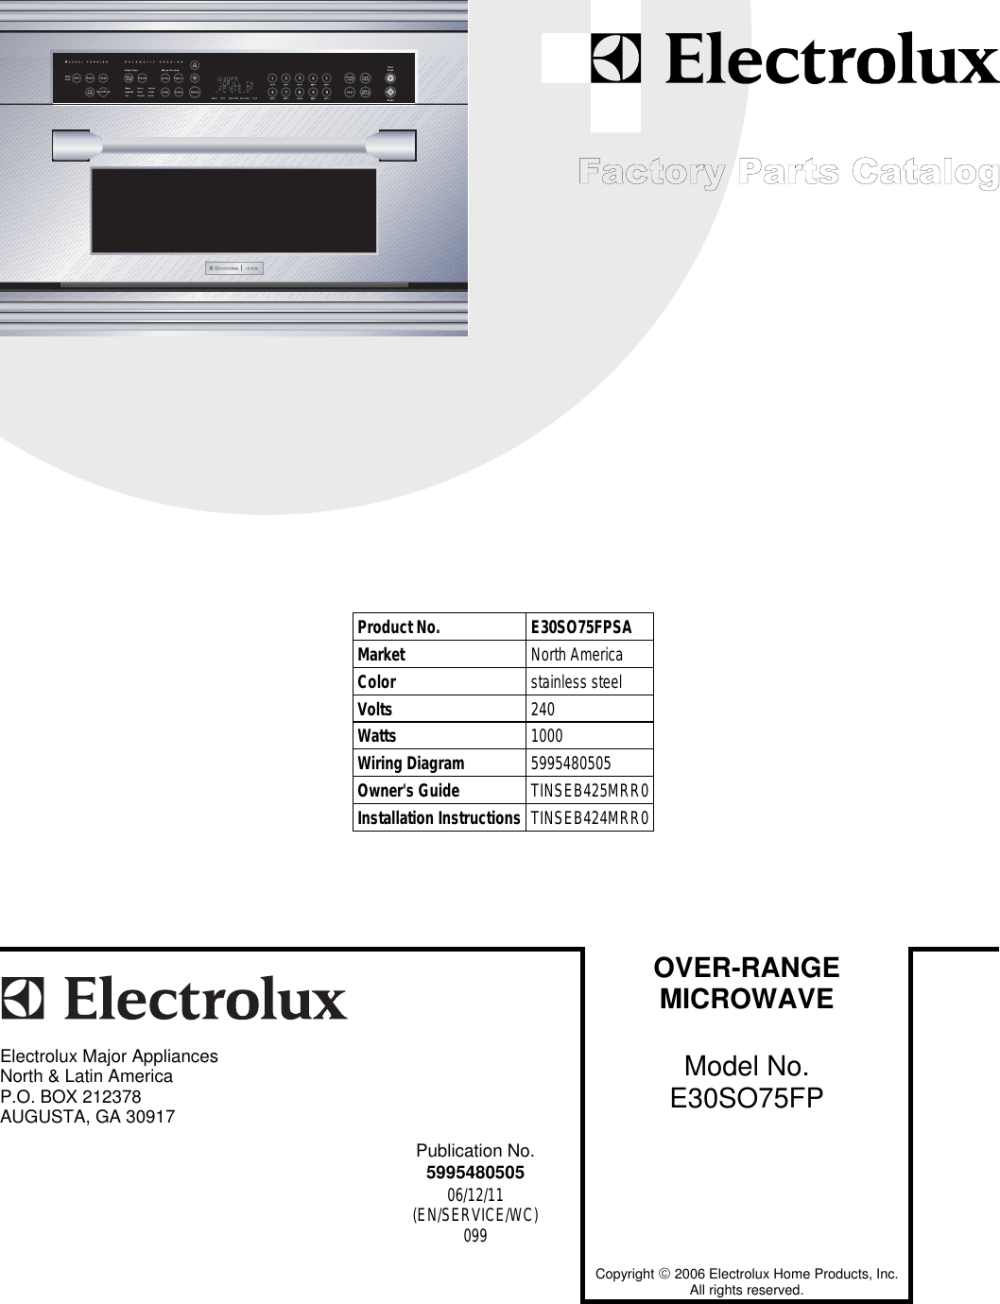 medium resolution of electrolux e30so75fp e30so75fps factory parts catalog user manual to the d3a7fe28 895c 41c8 9977 4c71208183ef